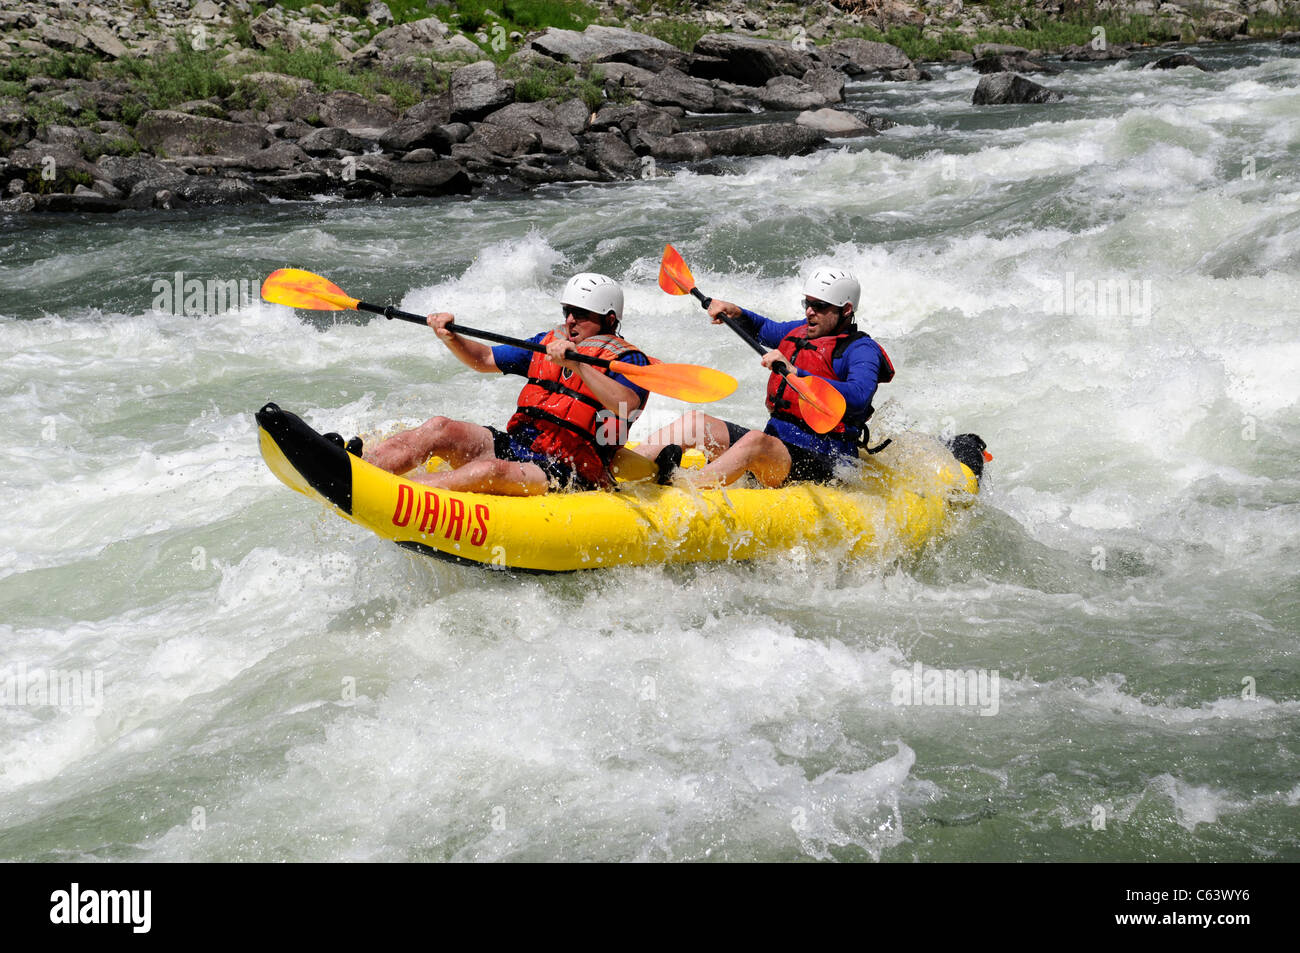 Two man inflatable kayak with O.A.R.S. in whitewater at Big Mallard Rapids on Main Salmon River in Idaho - Stock Image